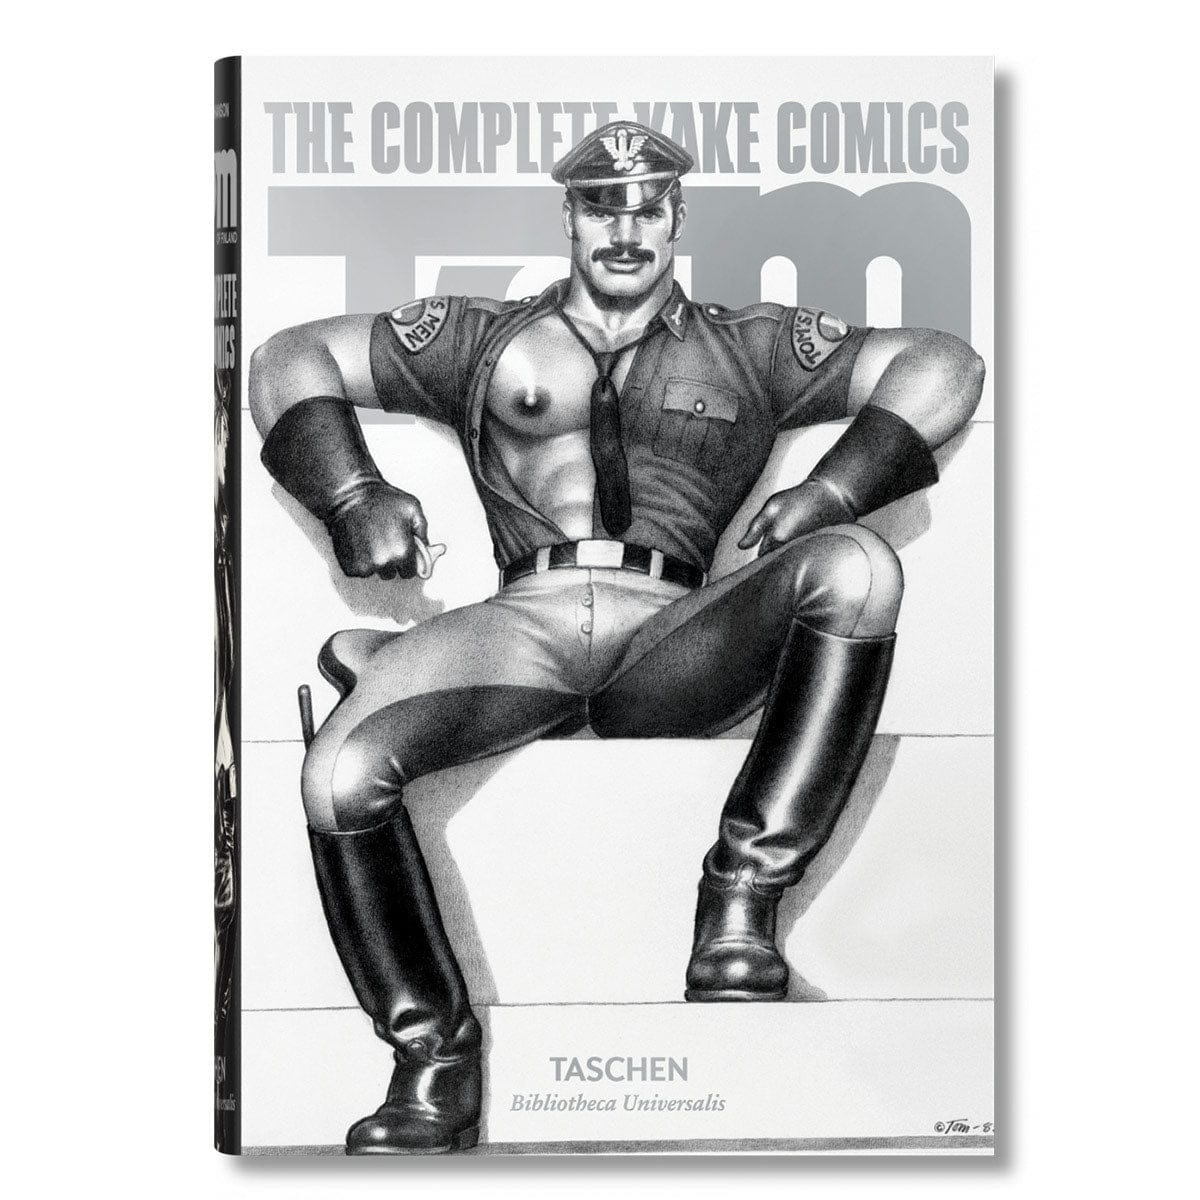 Tom of Finland: The Complete Kake Comics by Taschen - rolik